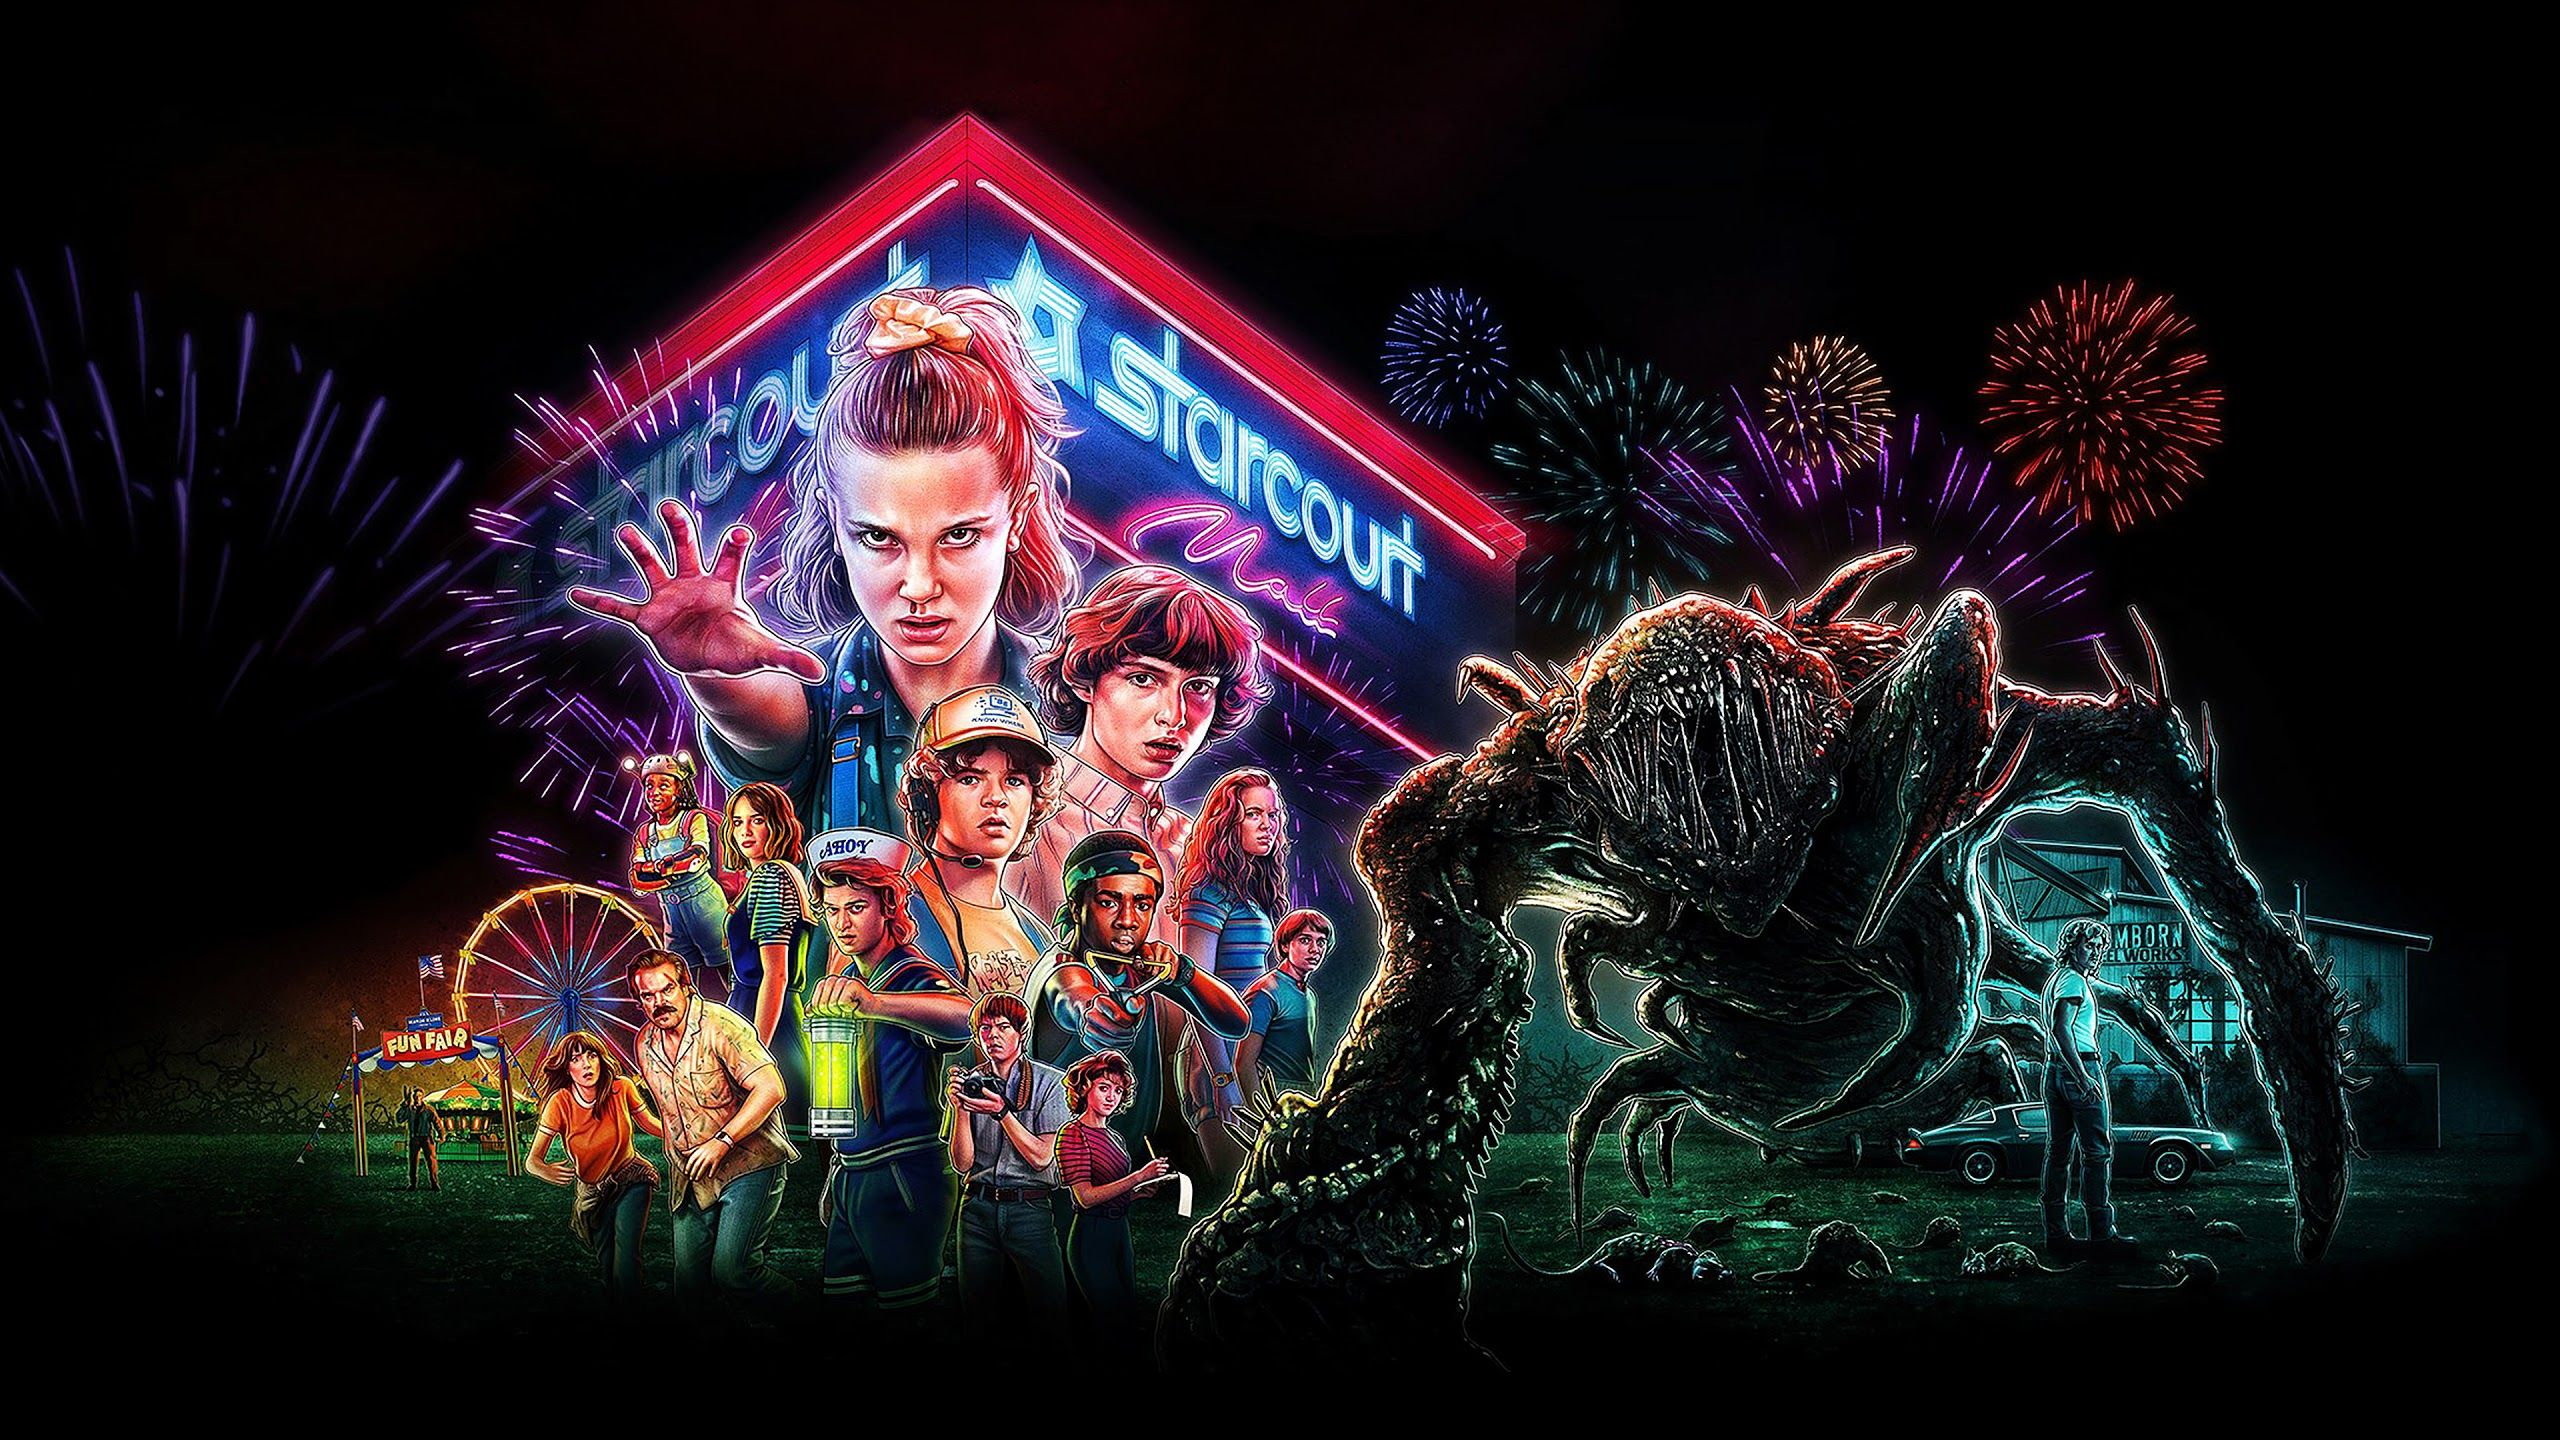 Stranger Things Widescreen Wallpapers Top Free Stranger Things